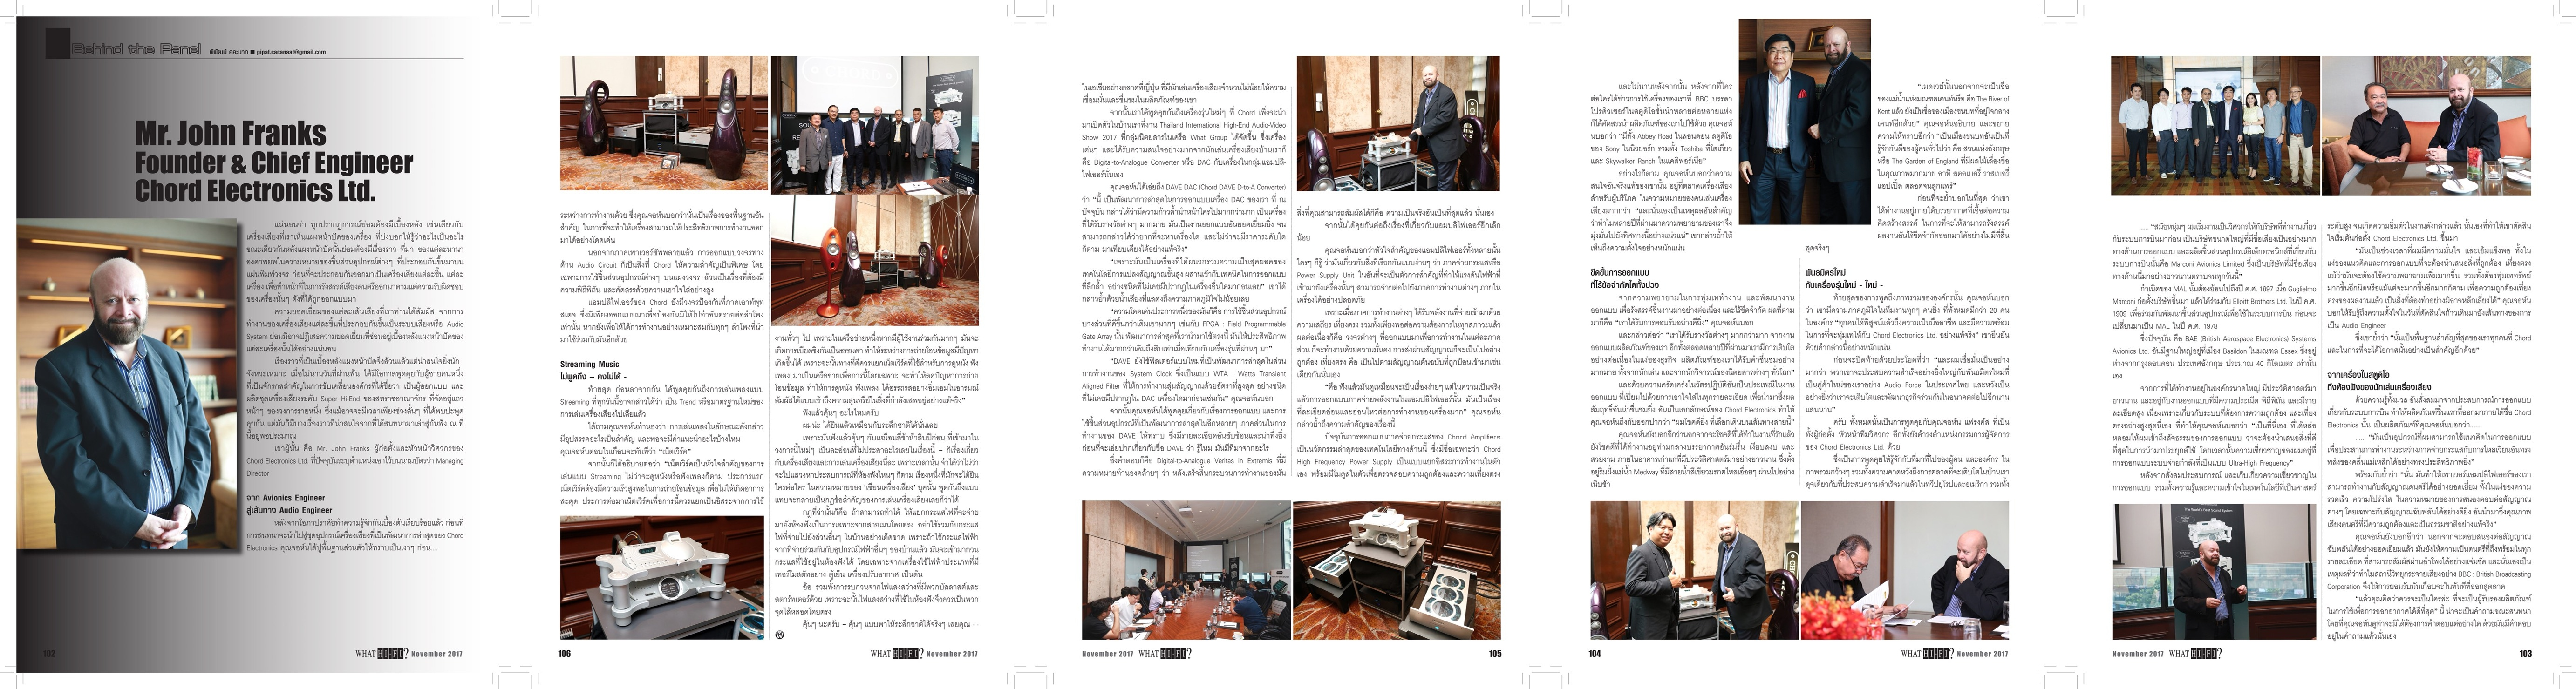 Chord Electronics welcomed in Thailand and featured in What